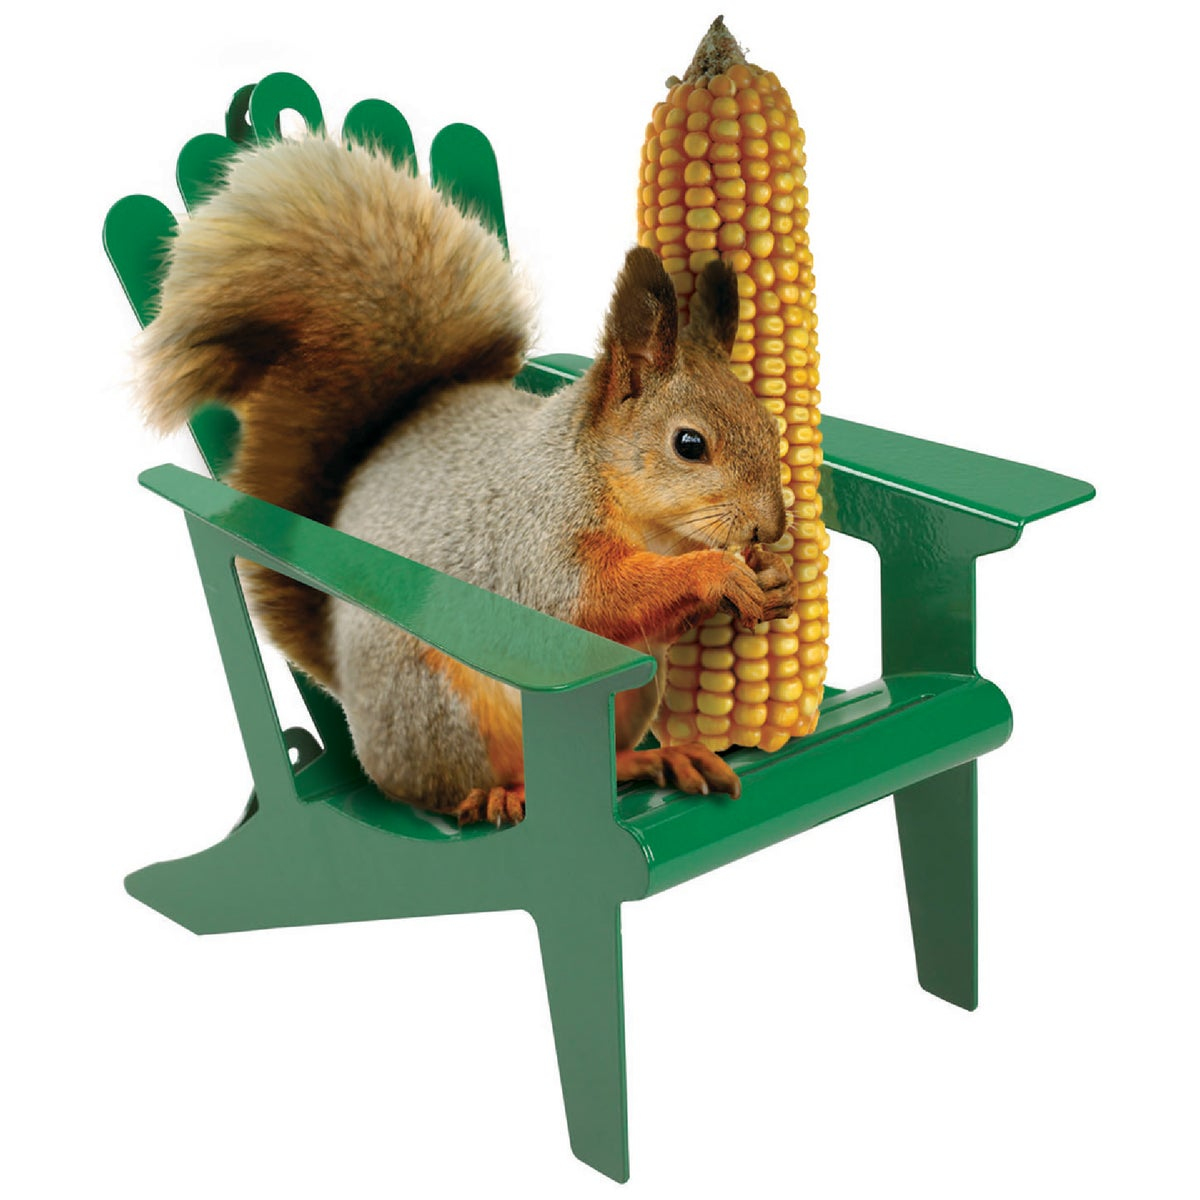 ADRNDCK SQUIRREL FEEDER - 50116 by Hiatt Mfg